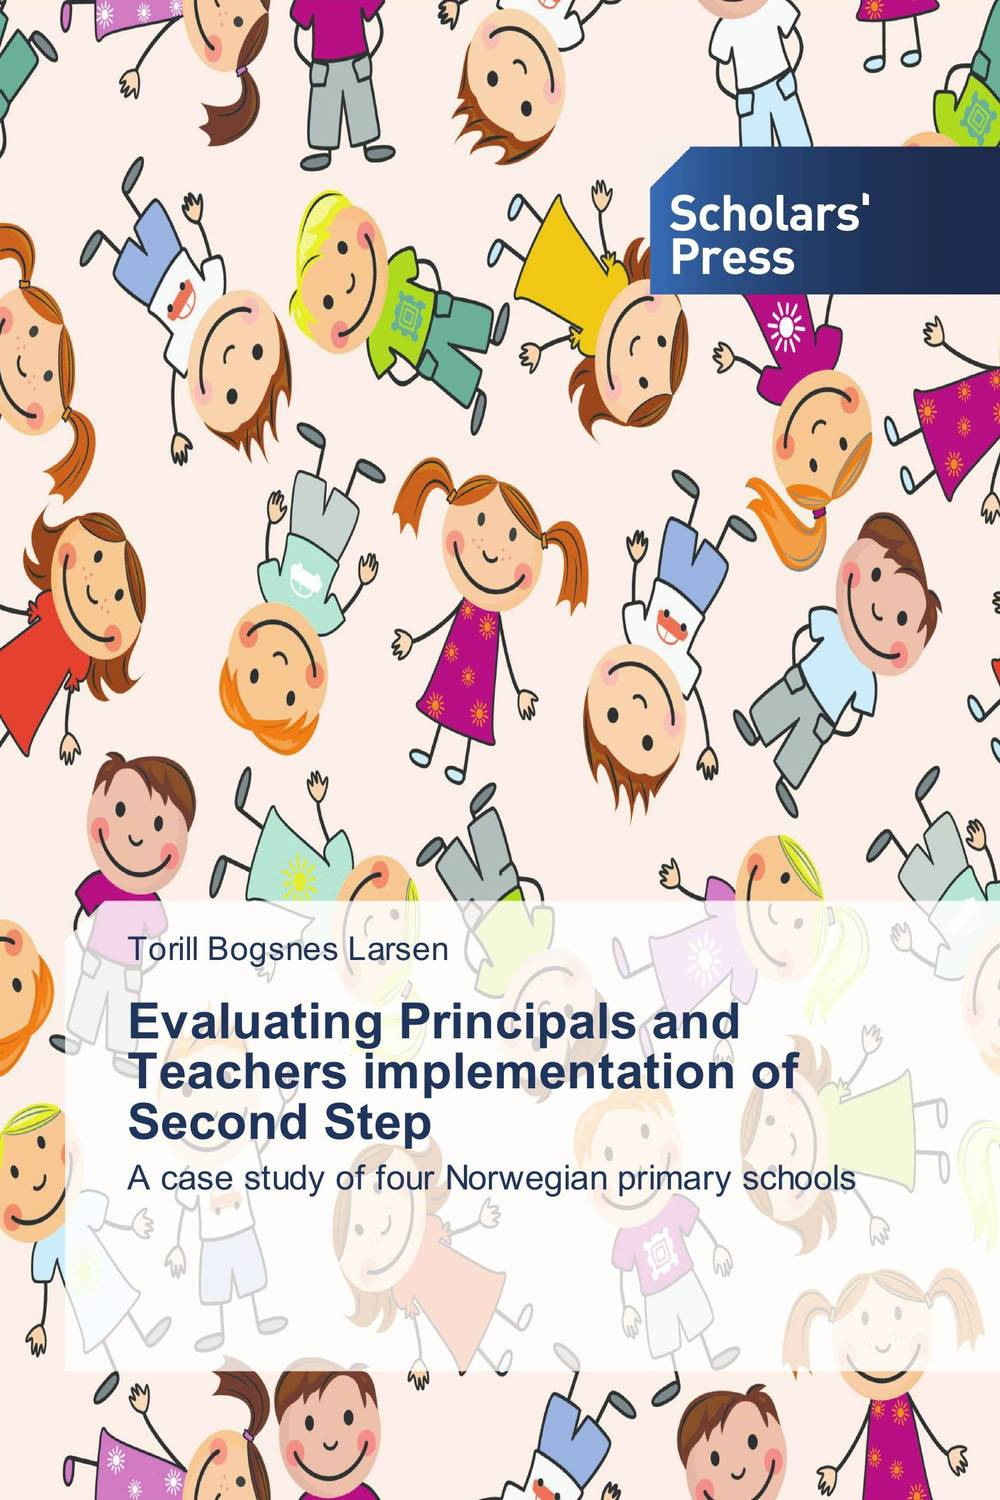 Evaluating Principals and Teachers implementation of Second Step